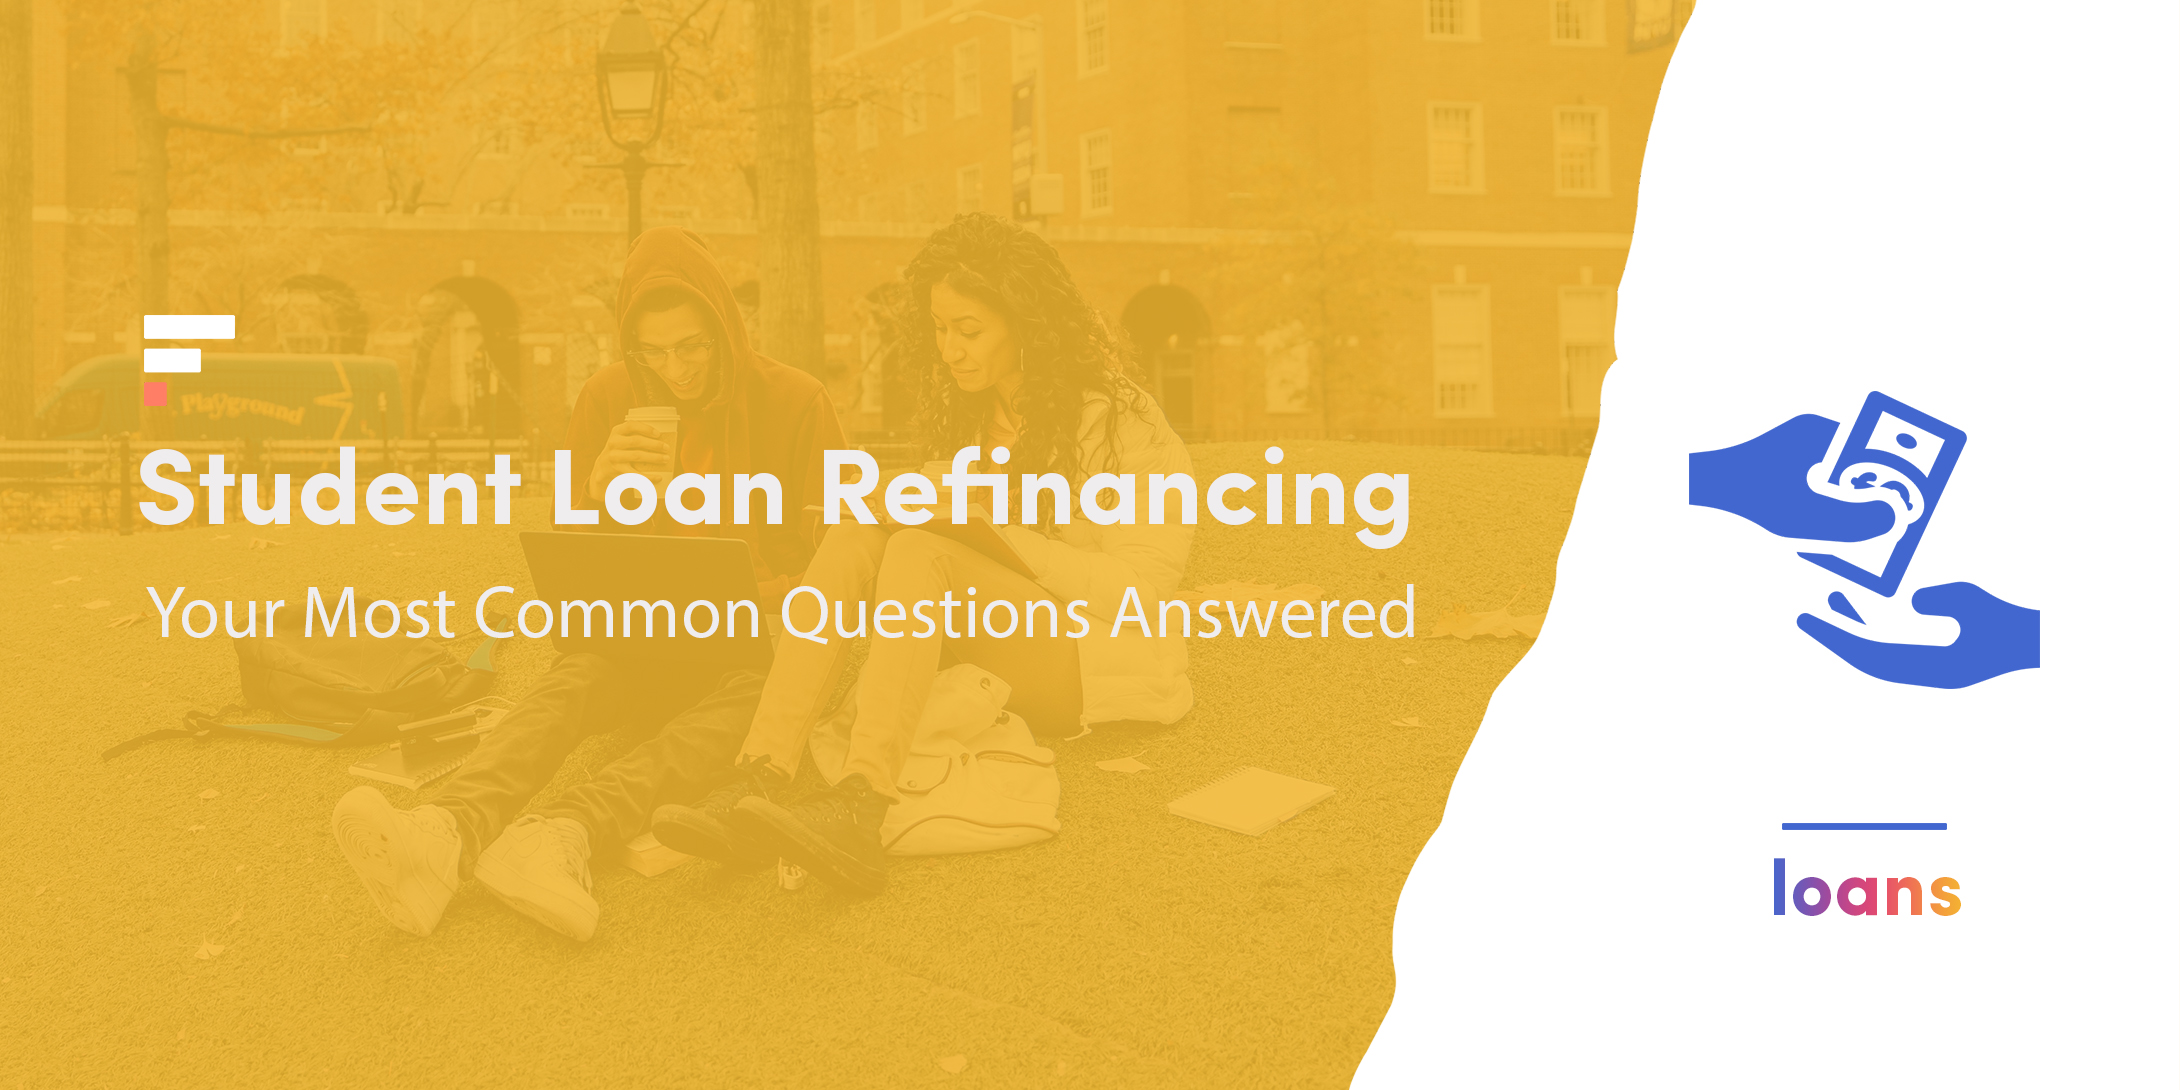 Student Loan Refinancing: Your Most Common Questions Answered